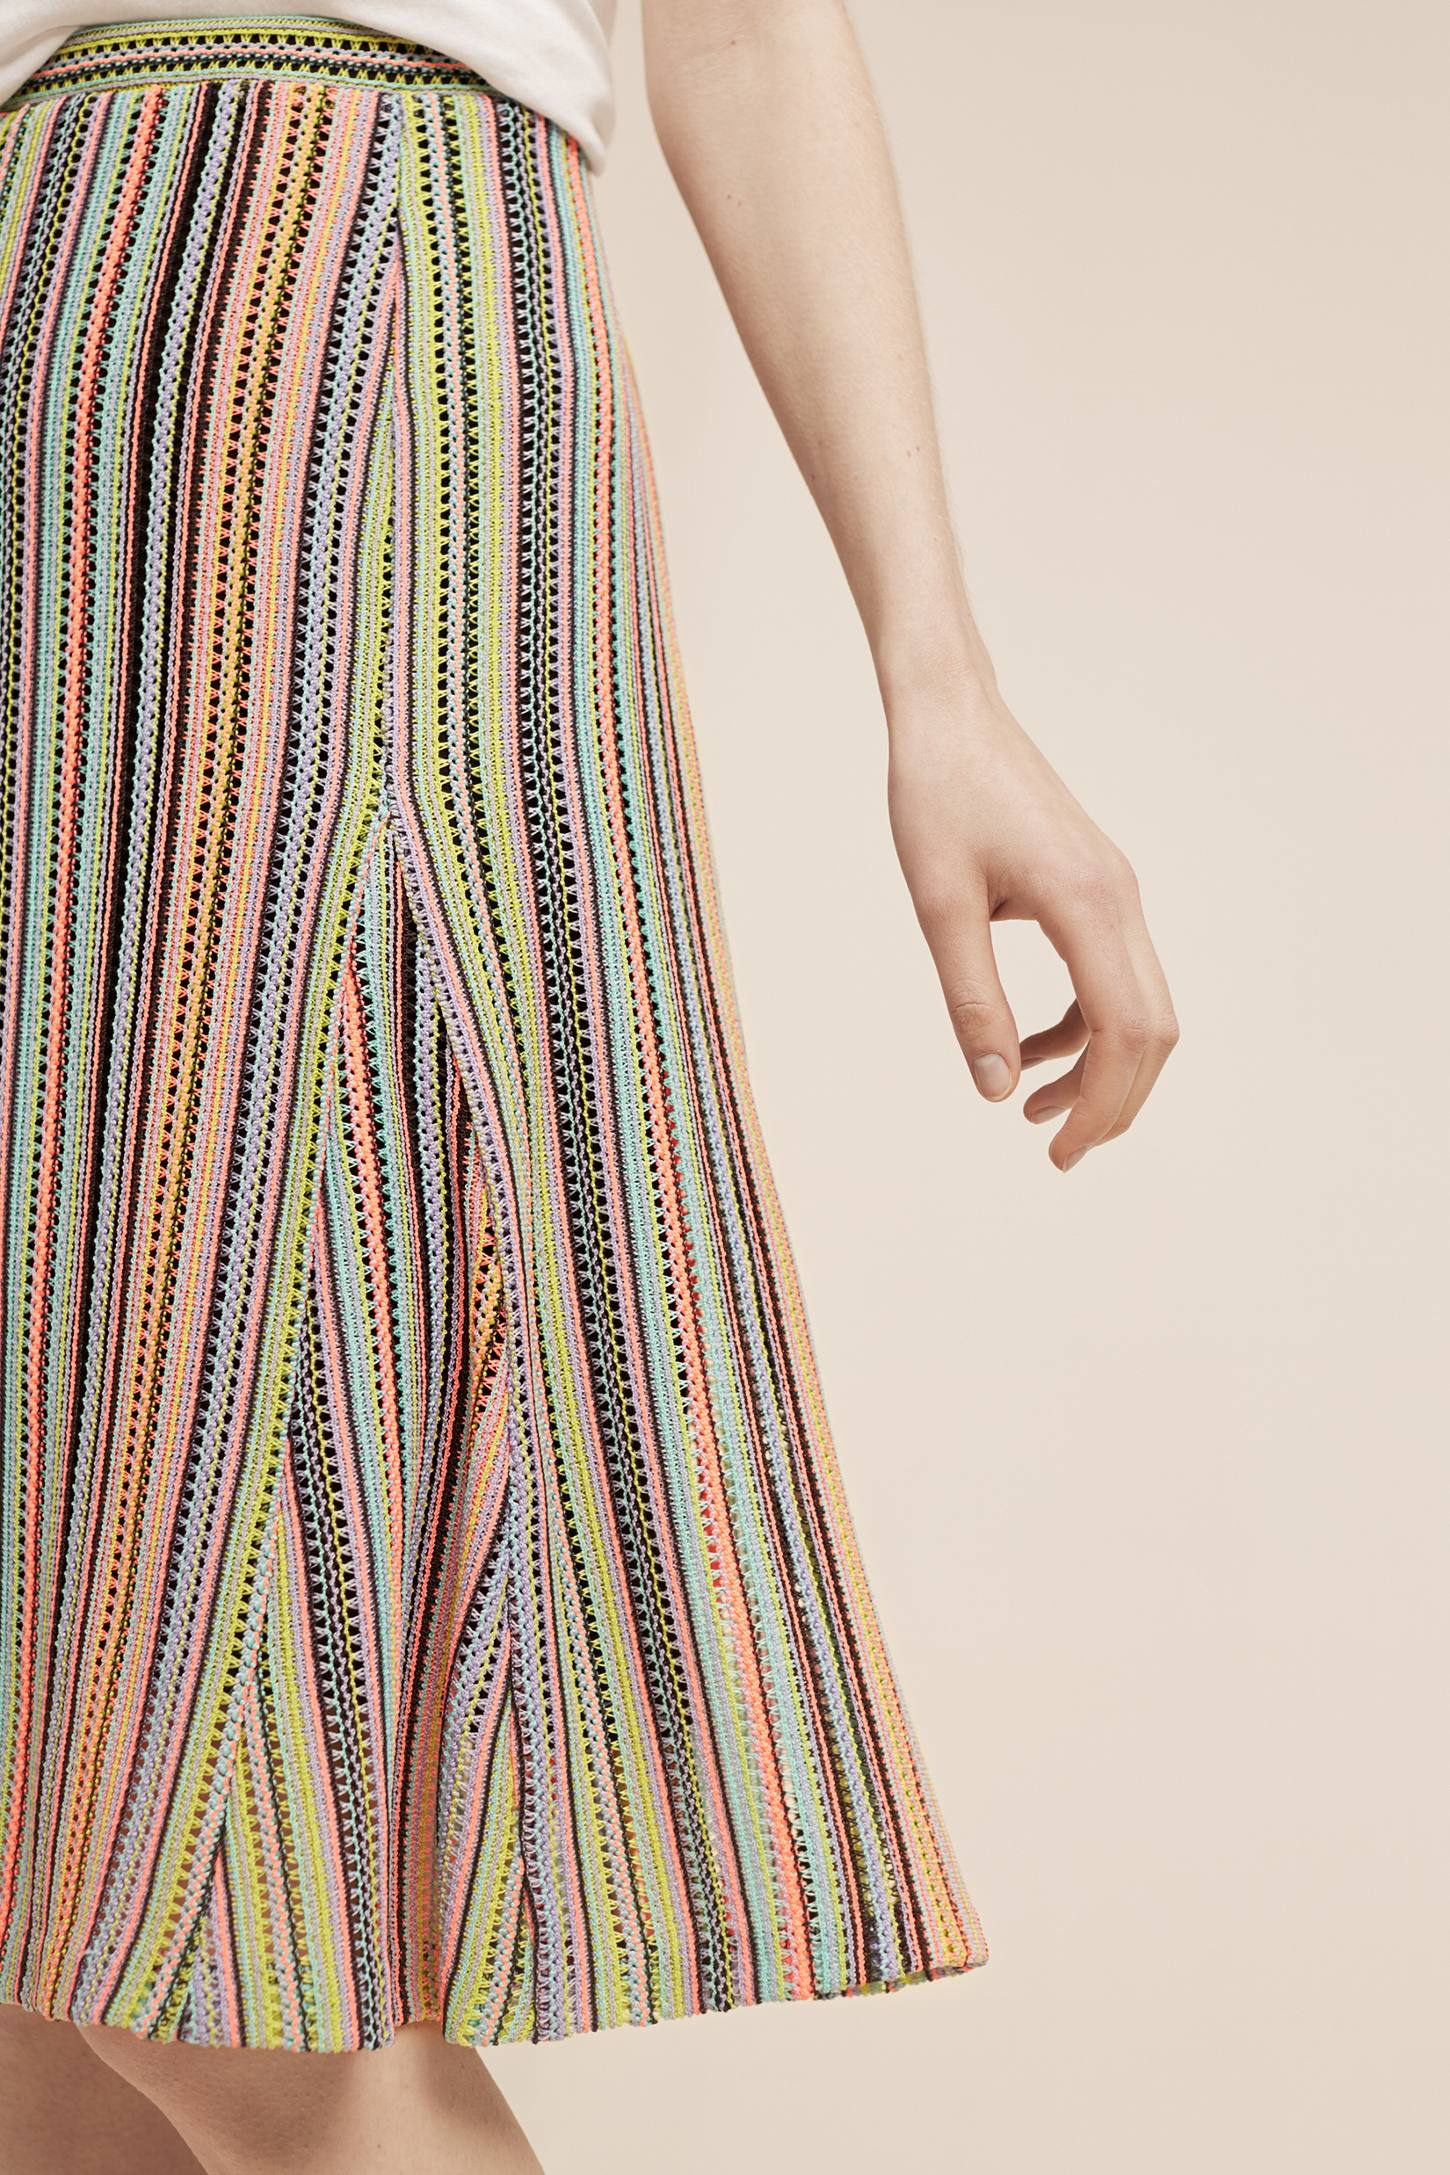 Slide View: 3: Spectral Stripe Skirt